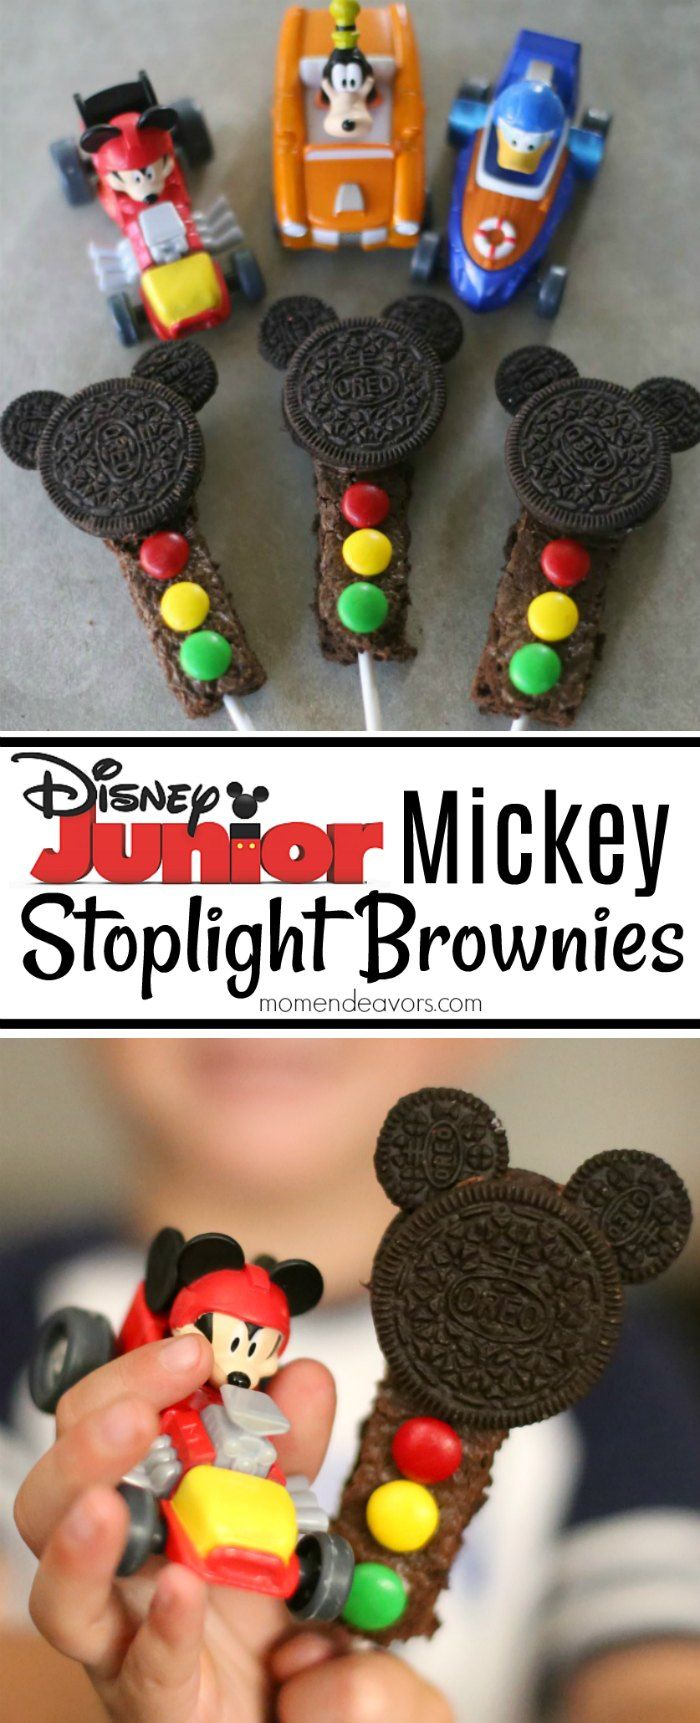 Have some Disney Junior fun with these Mickey Stoplight Brownie treats - perfect for watching new FriYAY episodes or a Mickey and the Roadster Racers party! AD